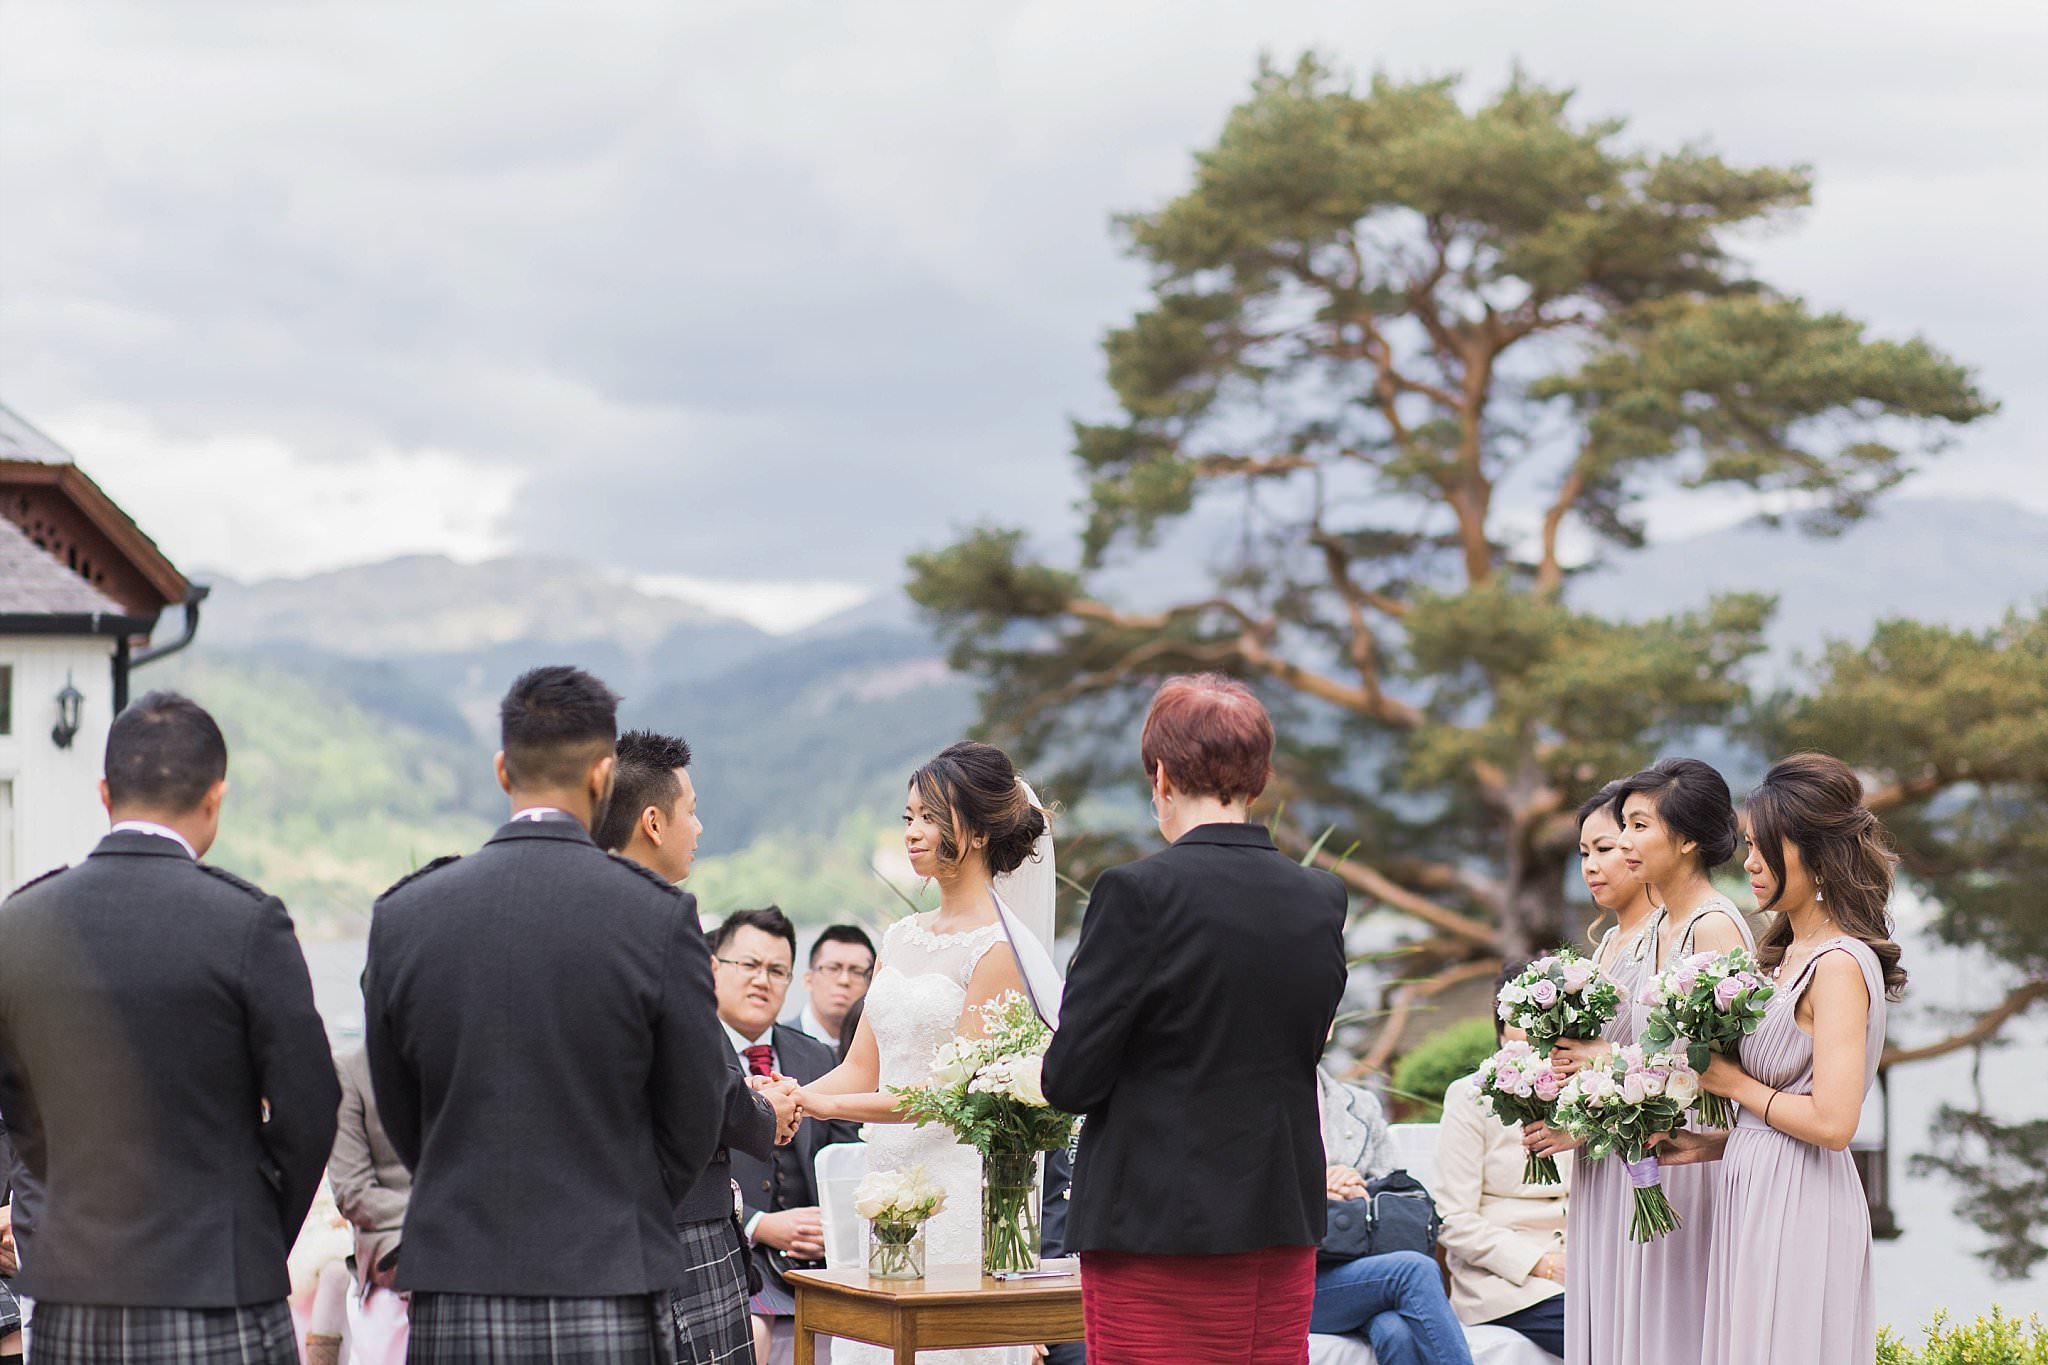 Fine Art Wedding Photographers,Glasgow wedding,The Gibsons,elegant wedding photographers glasgow,elopements scotland,lochside wedding,natural wedding photographers,romantic photographers Scotland,soft wedding photographers,wedding lodge on loch goil,weddings scotland,